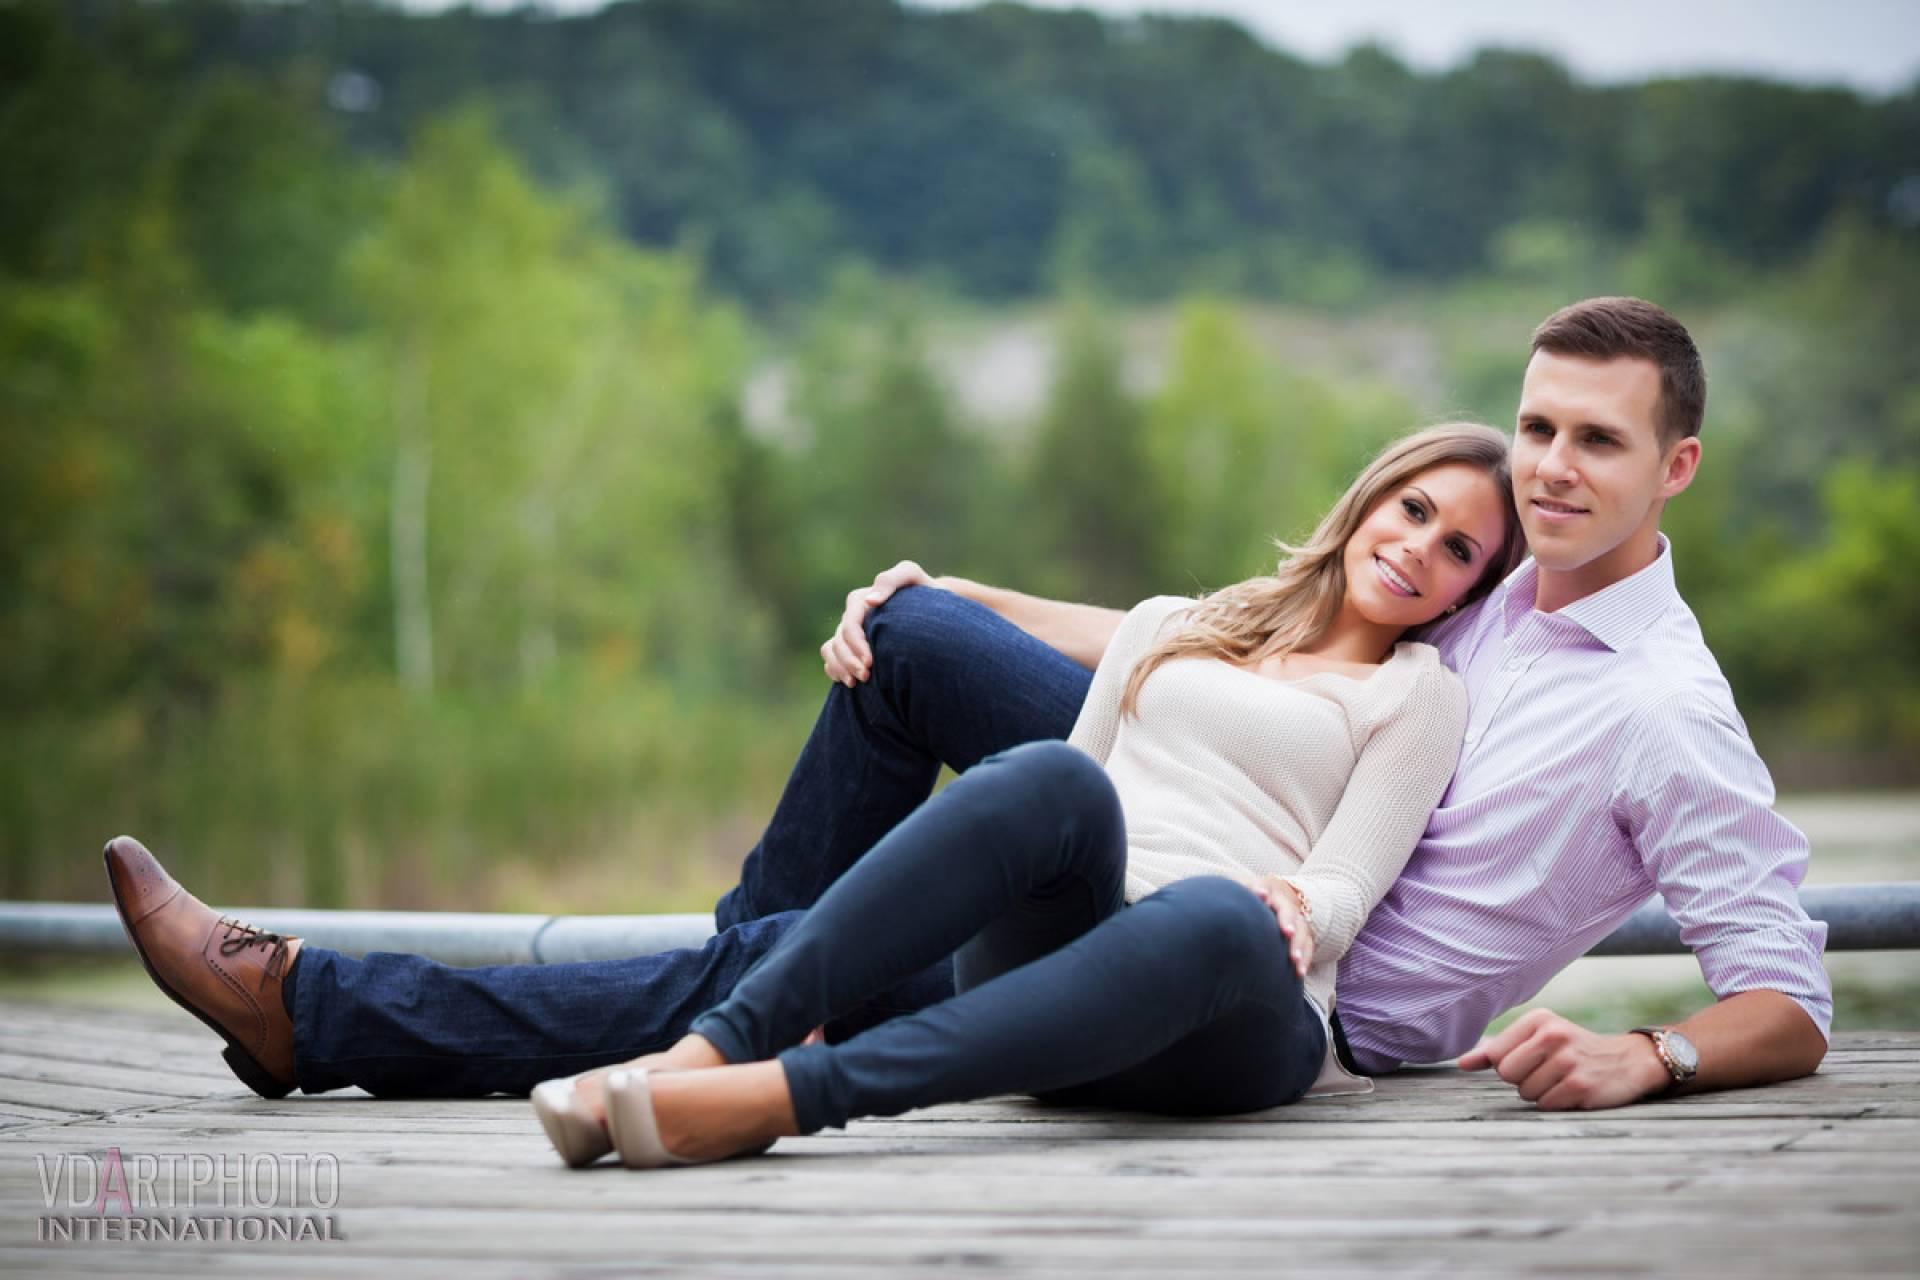 201509/Silvia_and_Mike_e_session_40_jpg.jpg -